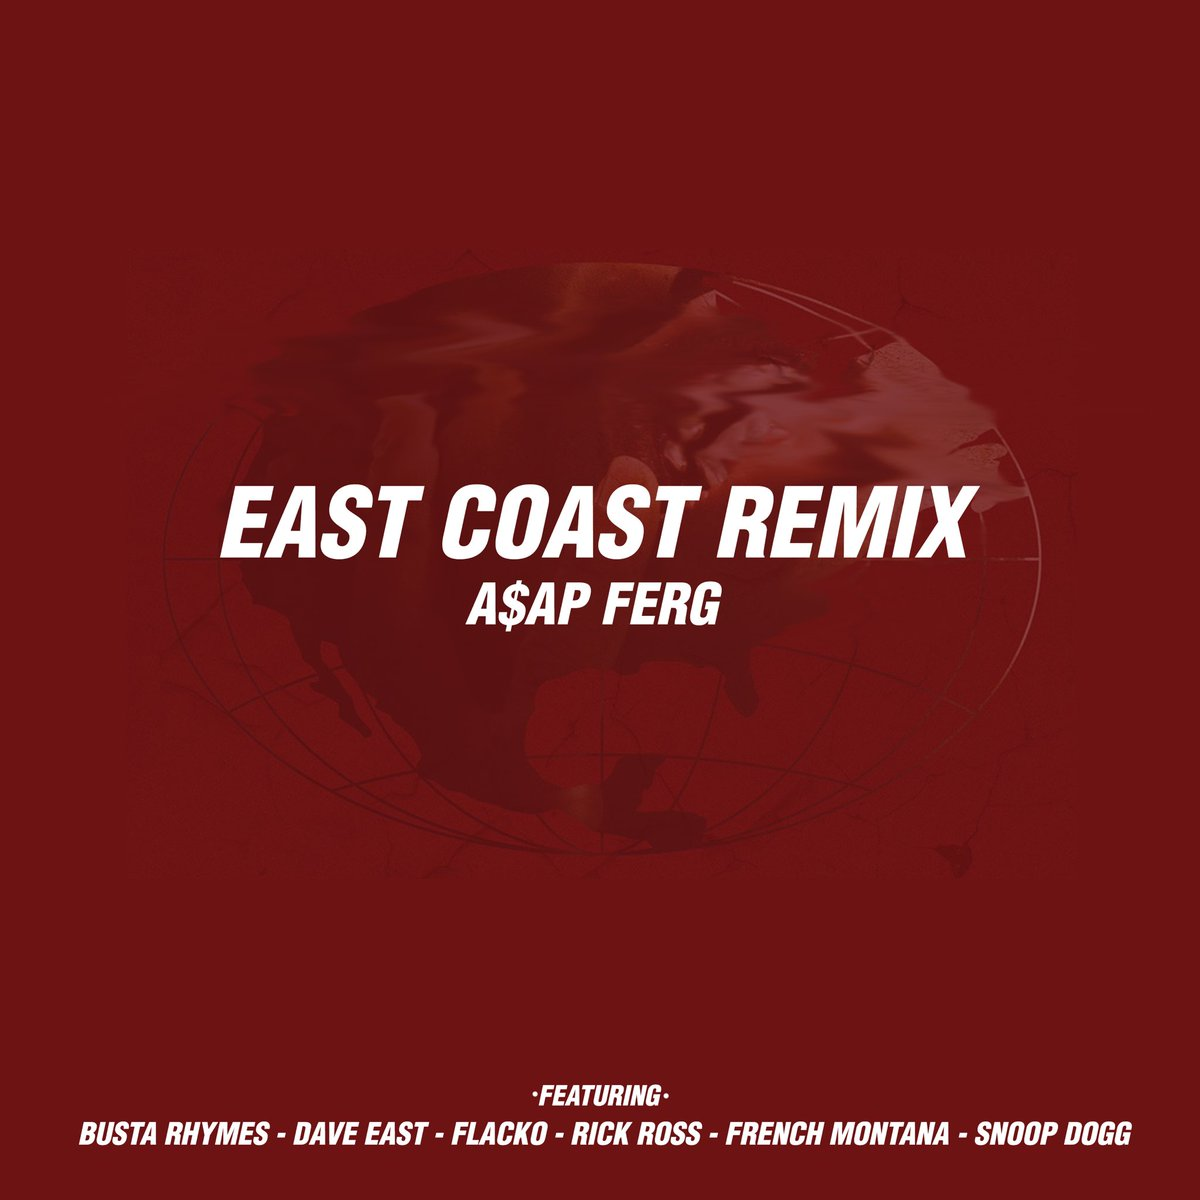 A$AP Ferg – East Coast (Remix) (feat. Busta Rhymes, A$AP Rocky, Dave East, French Montana, Rick Ross & Snoop Dogg)